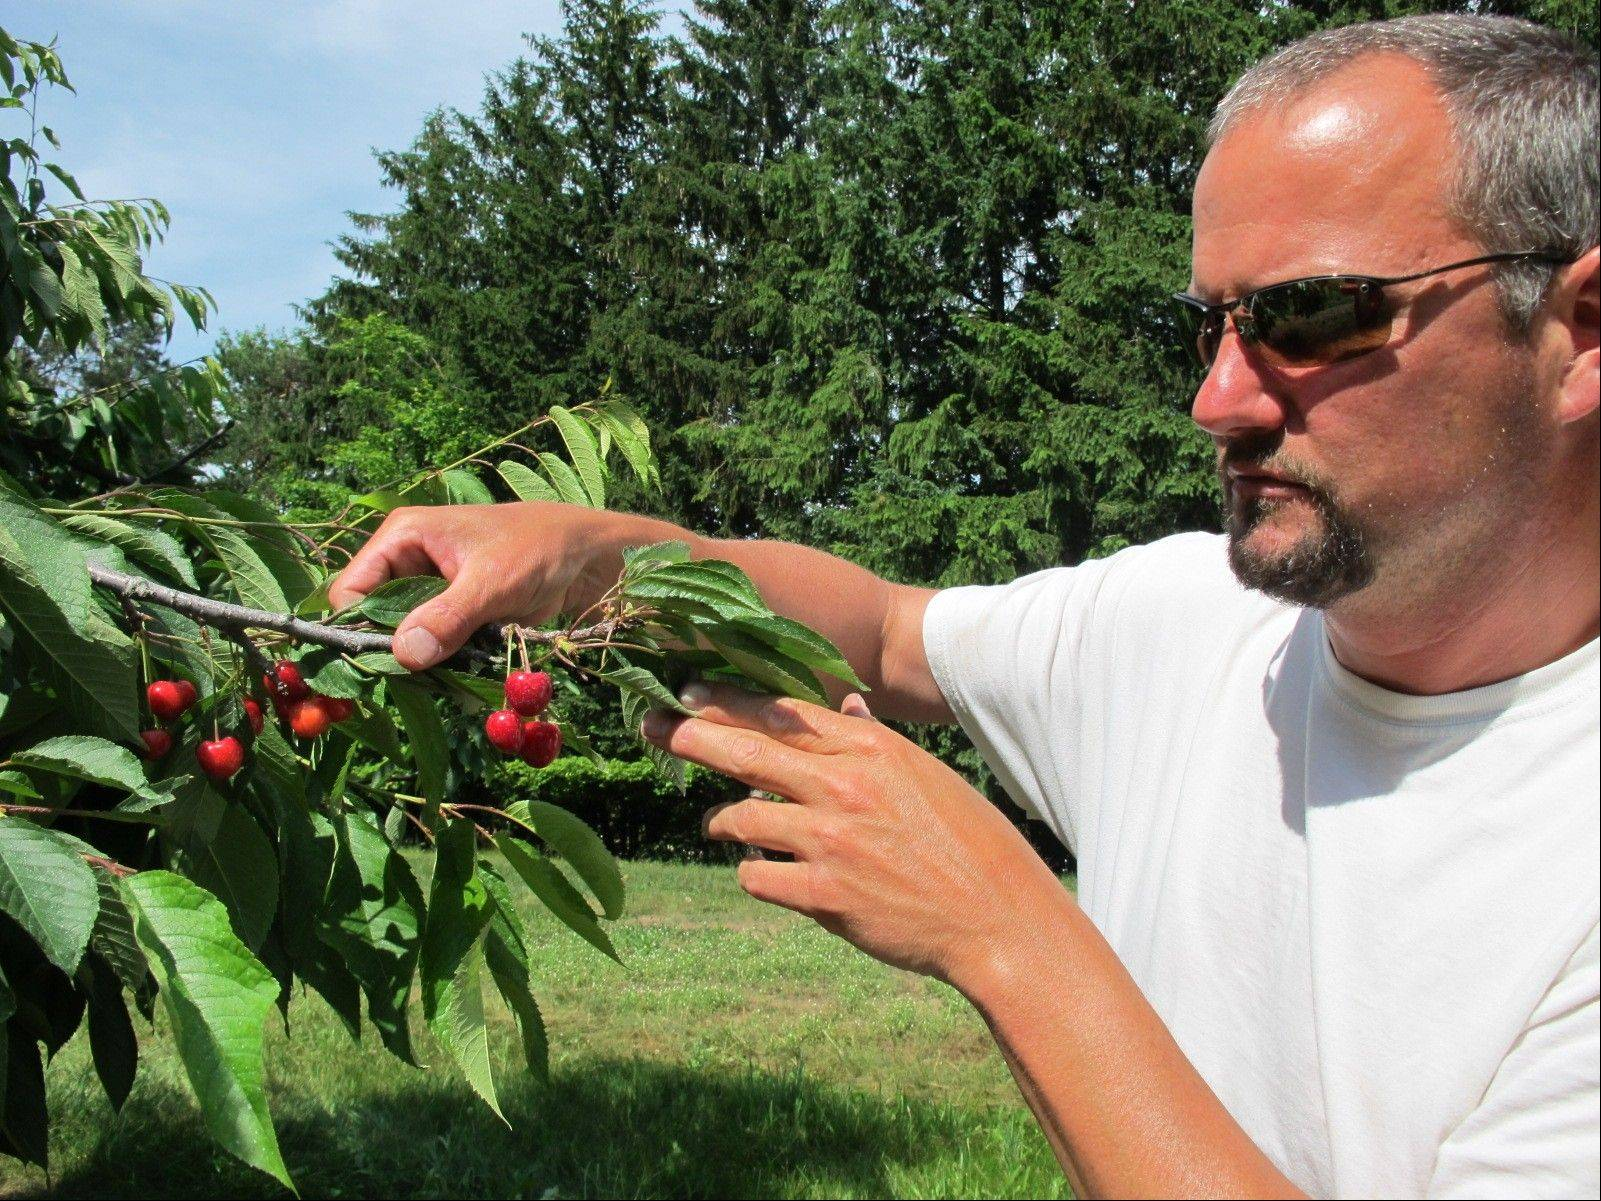 Patrick McGuire of Atwood, Mich., examines sweet cherries growing in his orchard. McGuire says a labor shortage caused by the immigration controversy is making it difficult for him and other Michigan fruit growers to harvest their crops.